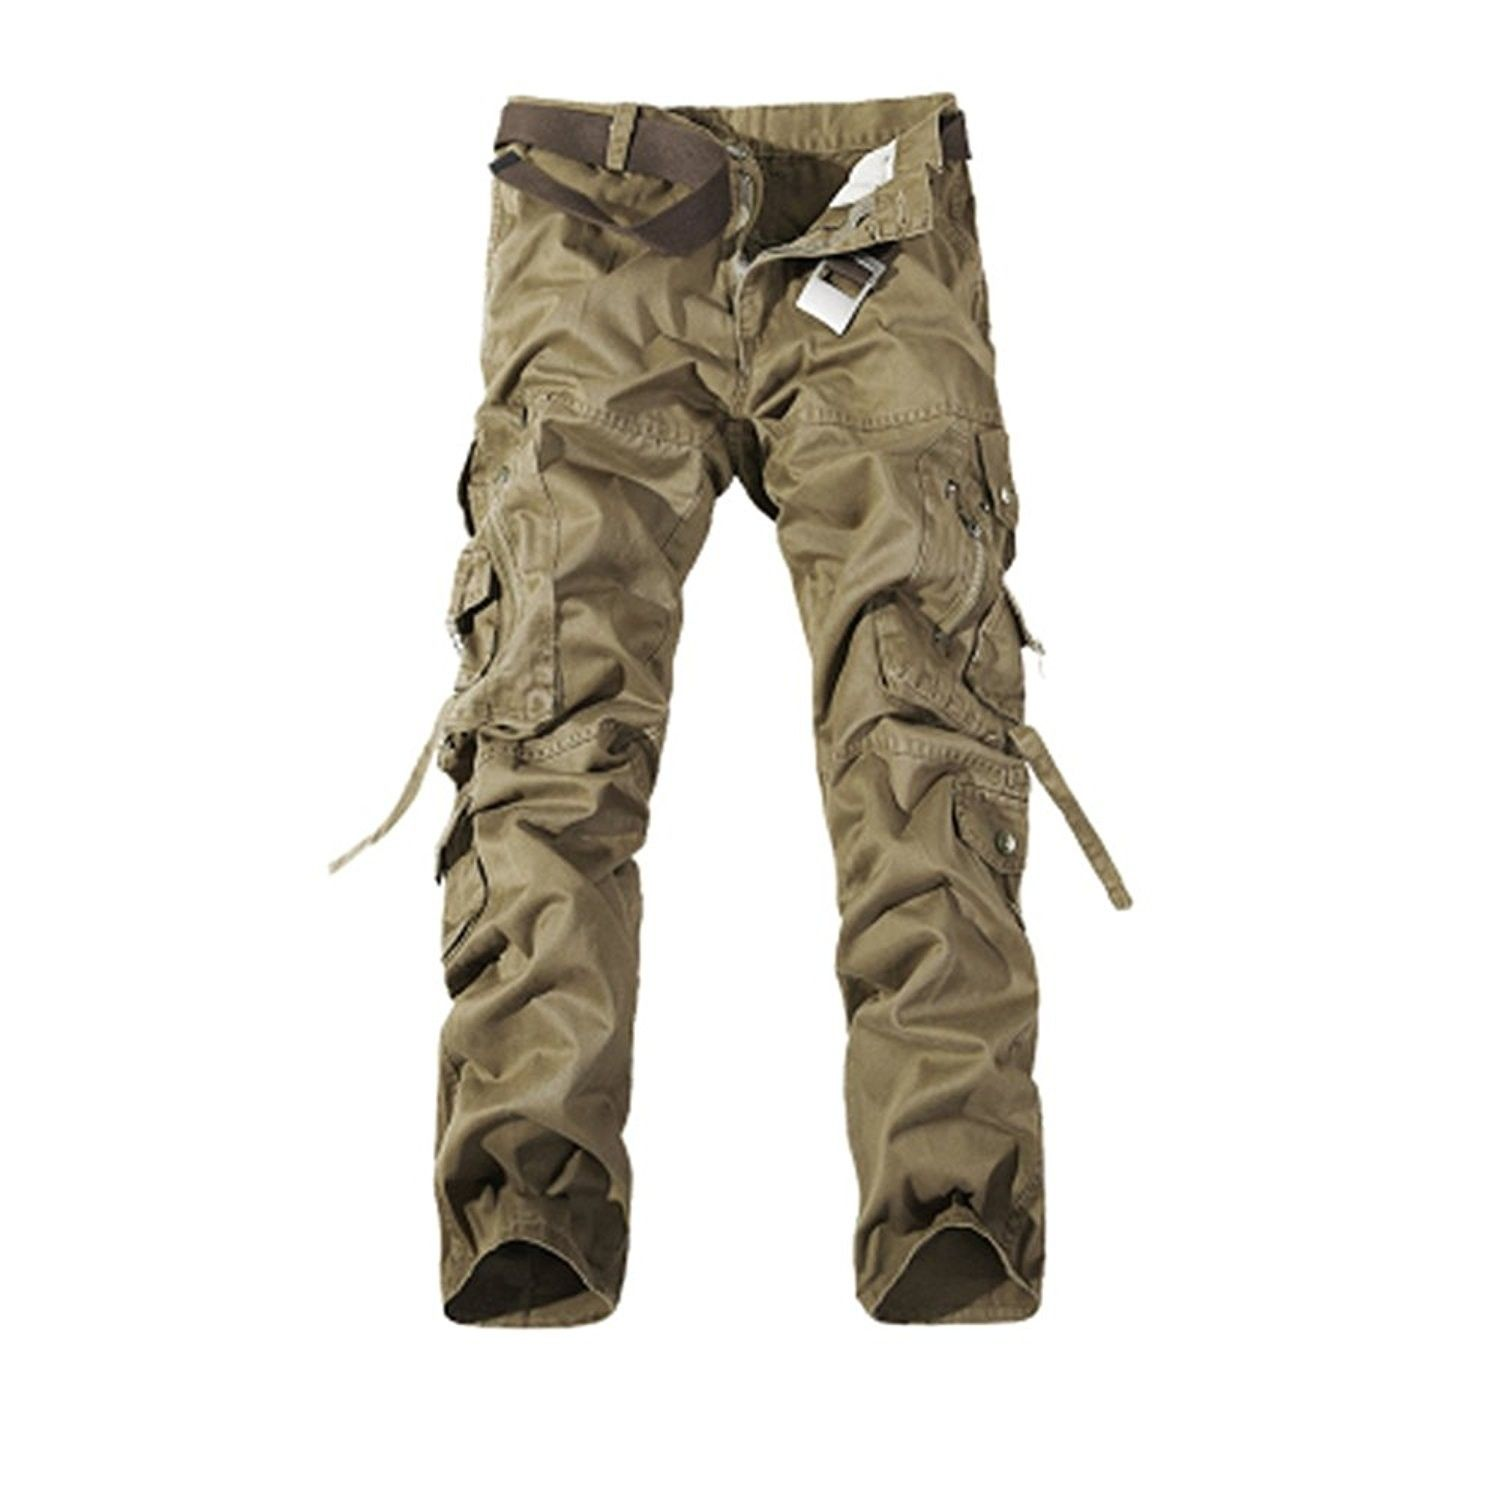 NiuZi Mens Military Cargo Pants Loose Fit Cotton Casual Multi-Pocket Camouflage Cargo Outdoor Work Pants